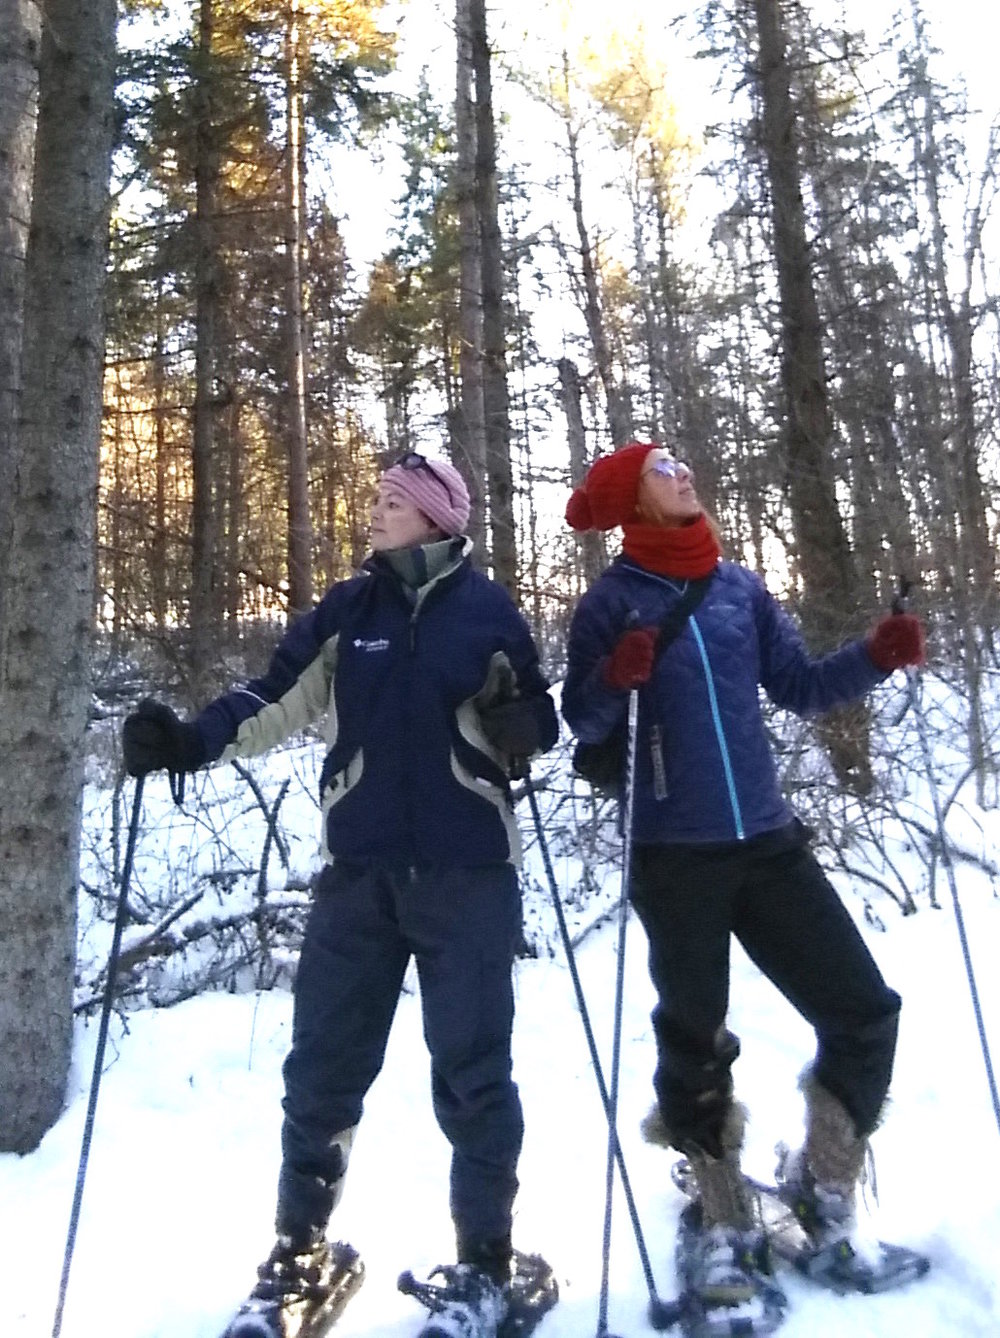 Sarah and Sara on snowshoe, surveying our forest surroundings.